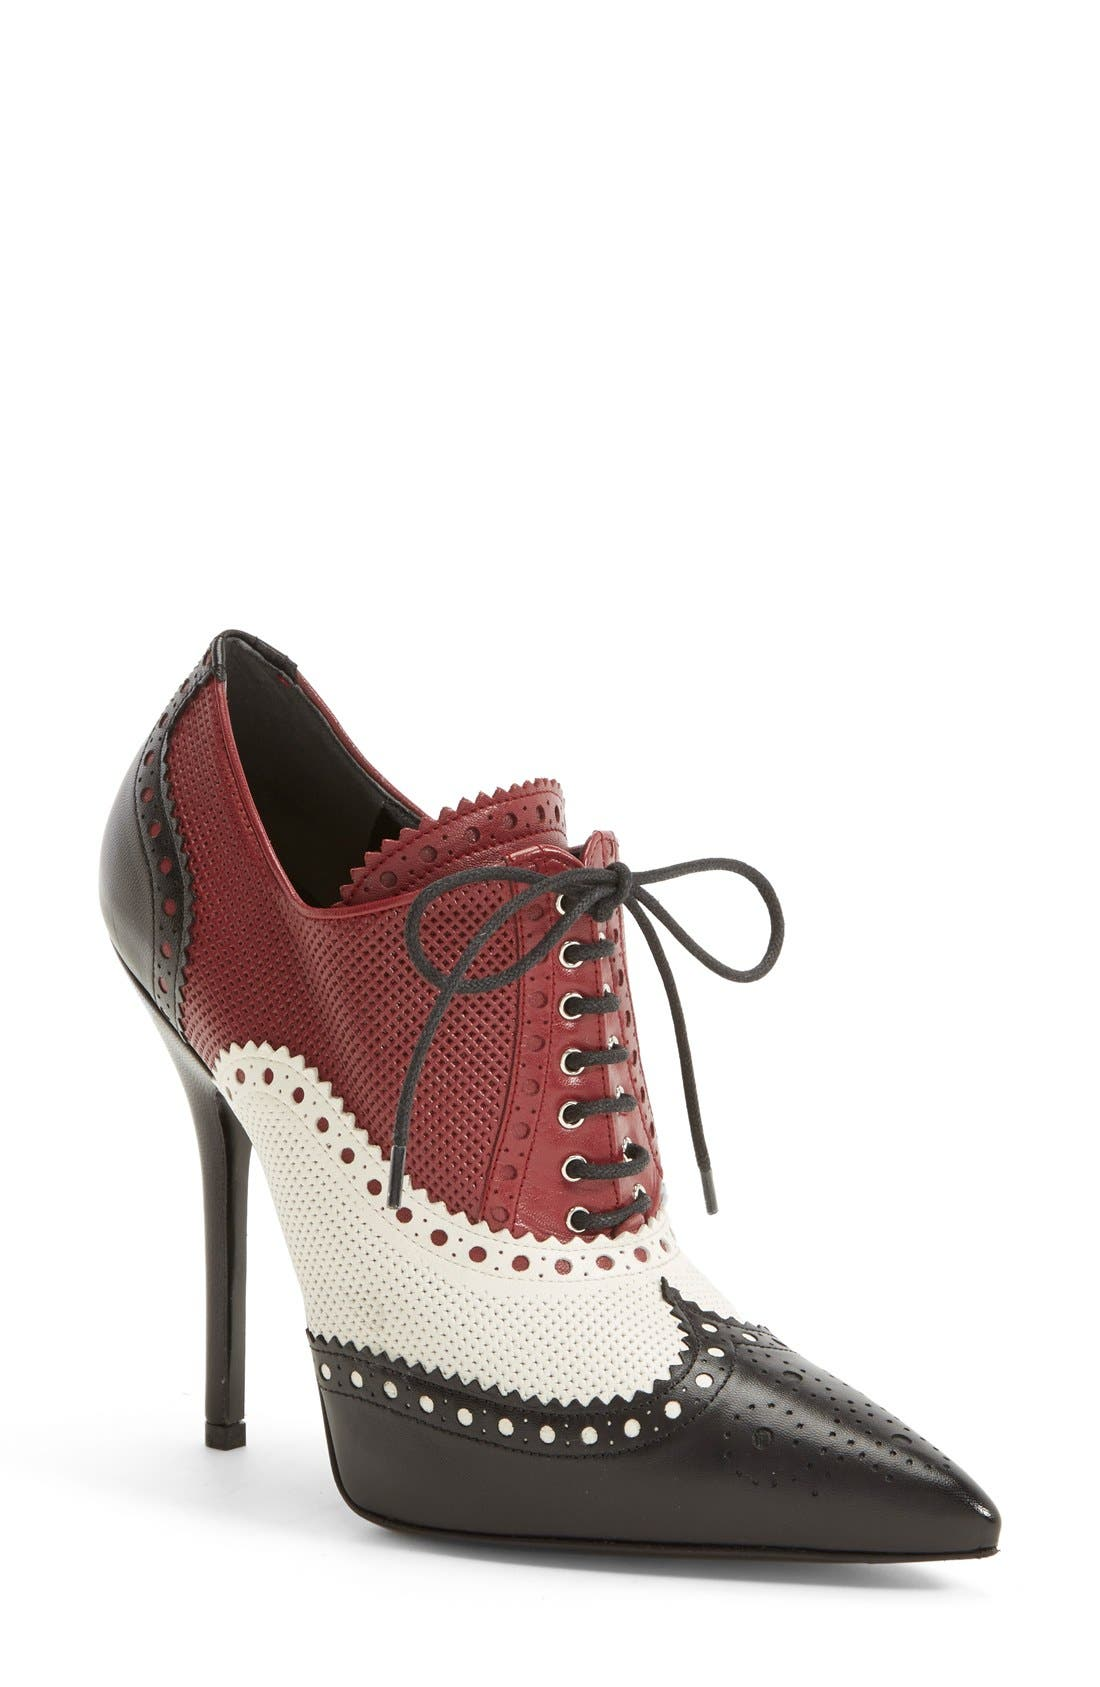 Main Image - Gucci 'Gia' Pointy Toe Bootie (Women)